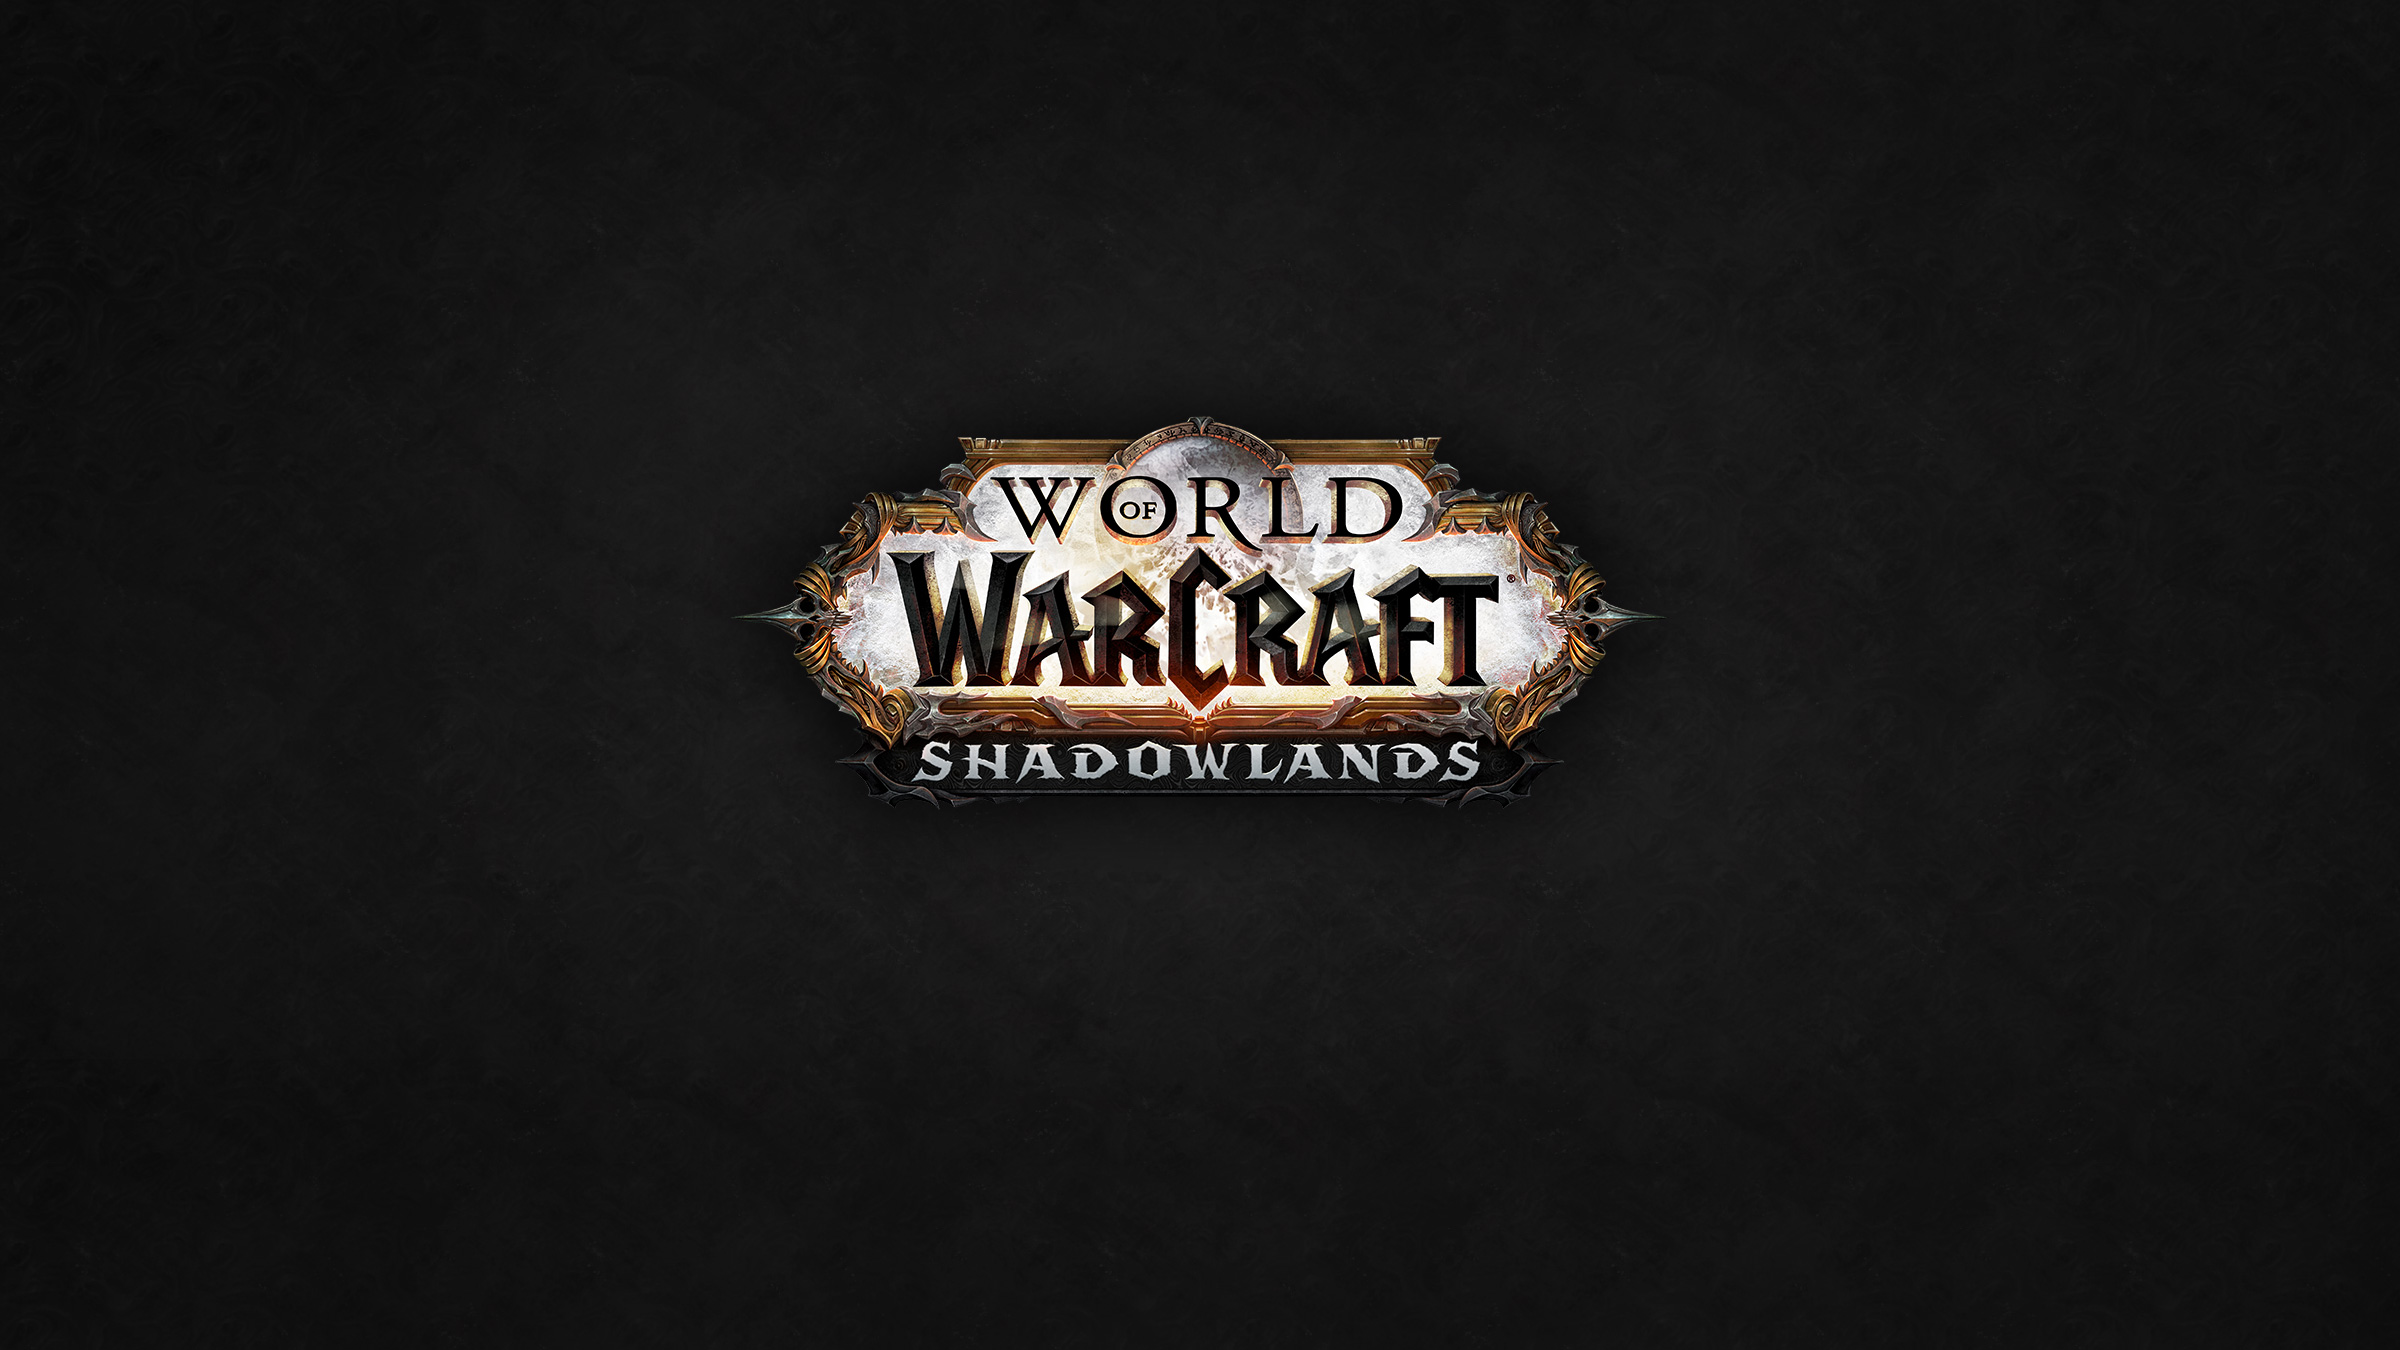 Trailer Cinemático de World of Warcraft Shadowlands